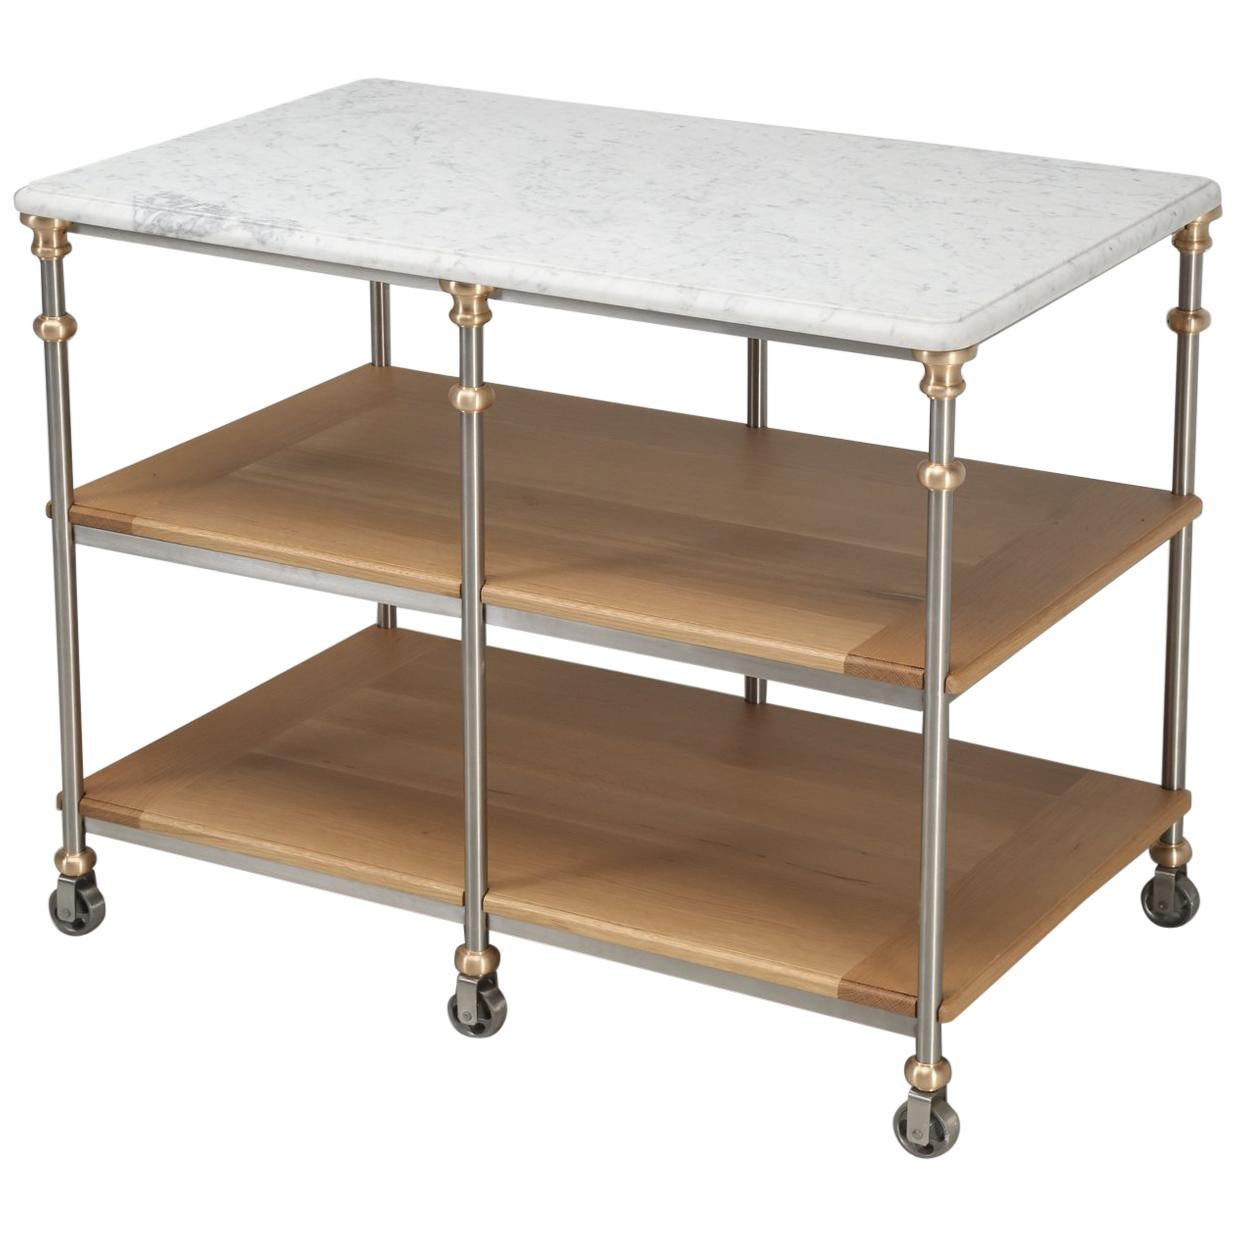 Old Plank's Stainless Steel and Bronze Kitchen Island with Carrera Marble